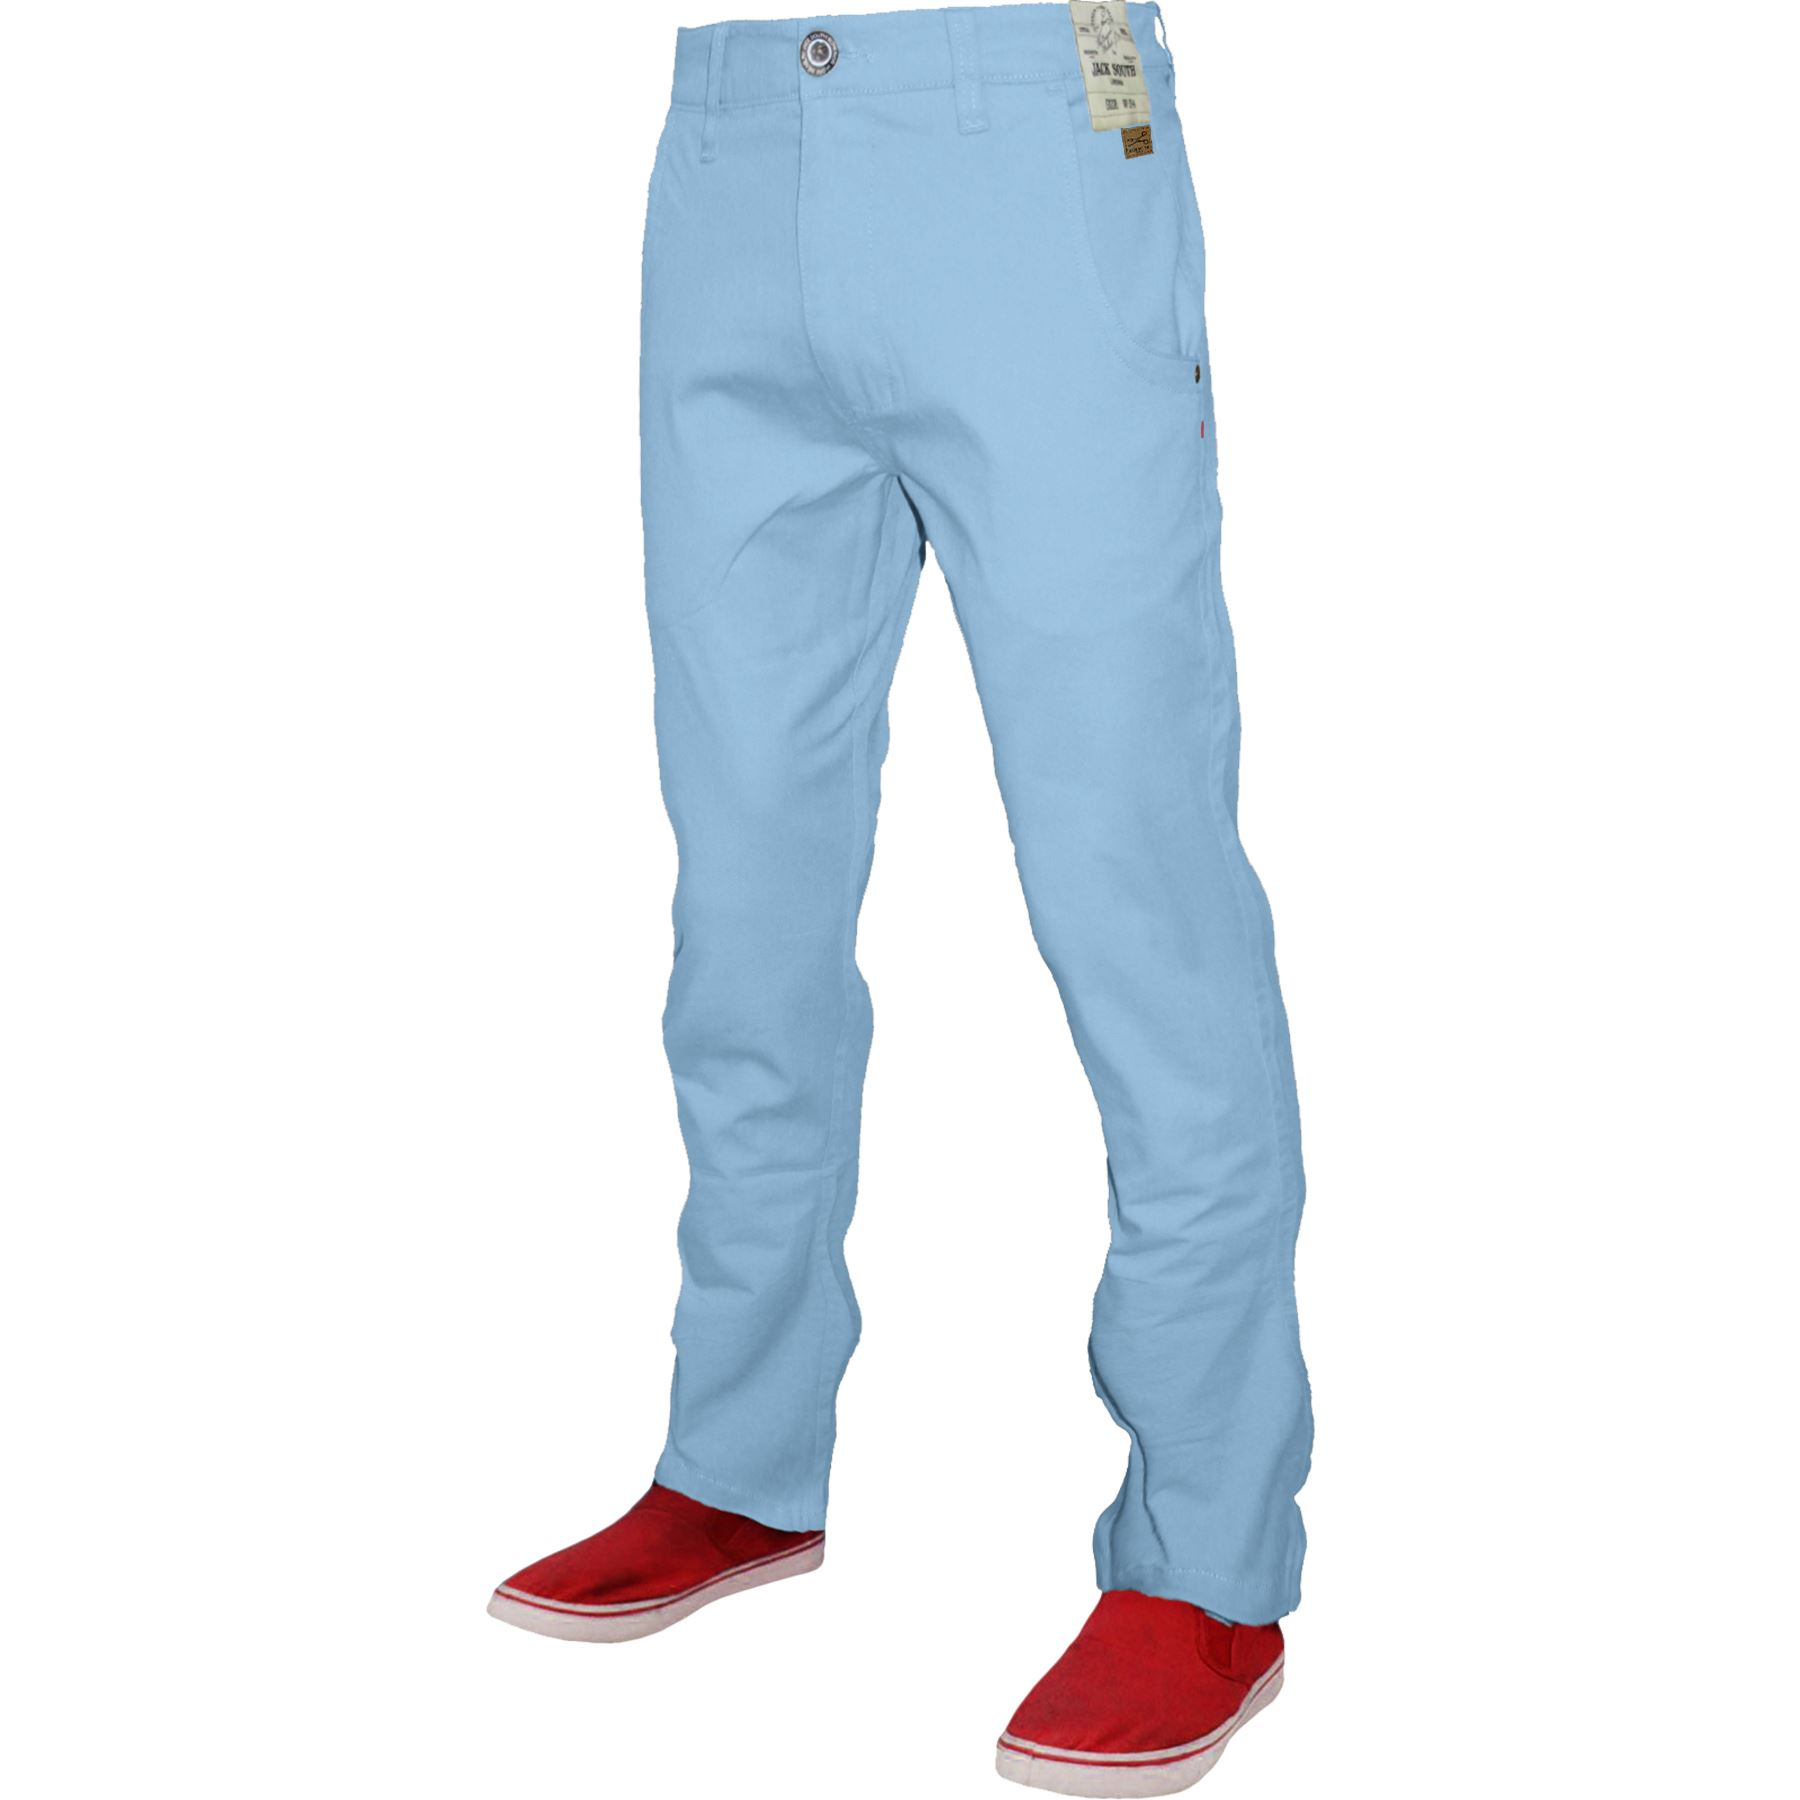 Mens-Chino-Classic-Regular-Fit-Trouser-Casual-Stretch-Spandex-Pants-Size-32-40 thumbnail 12